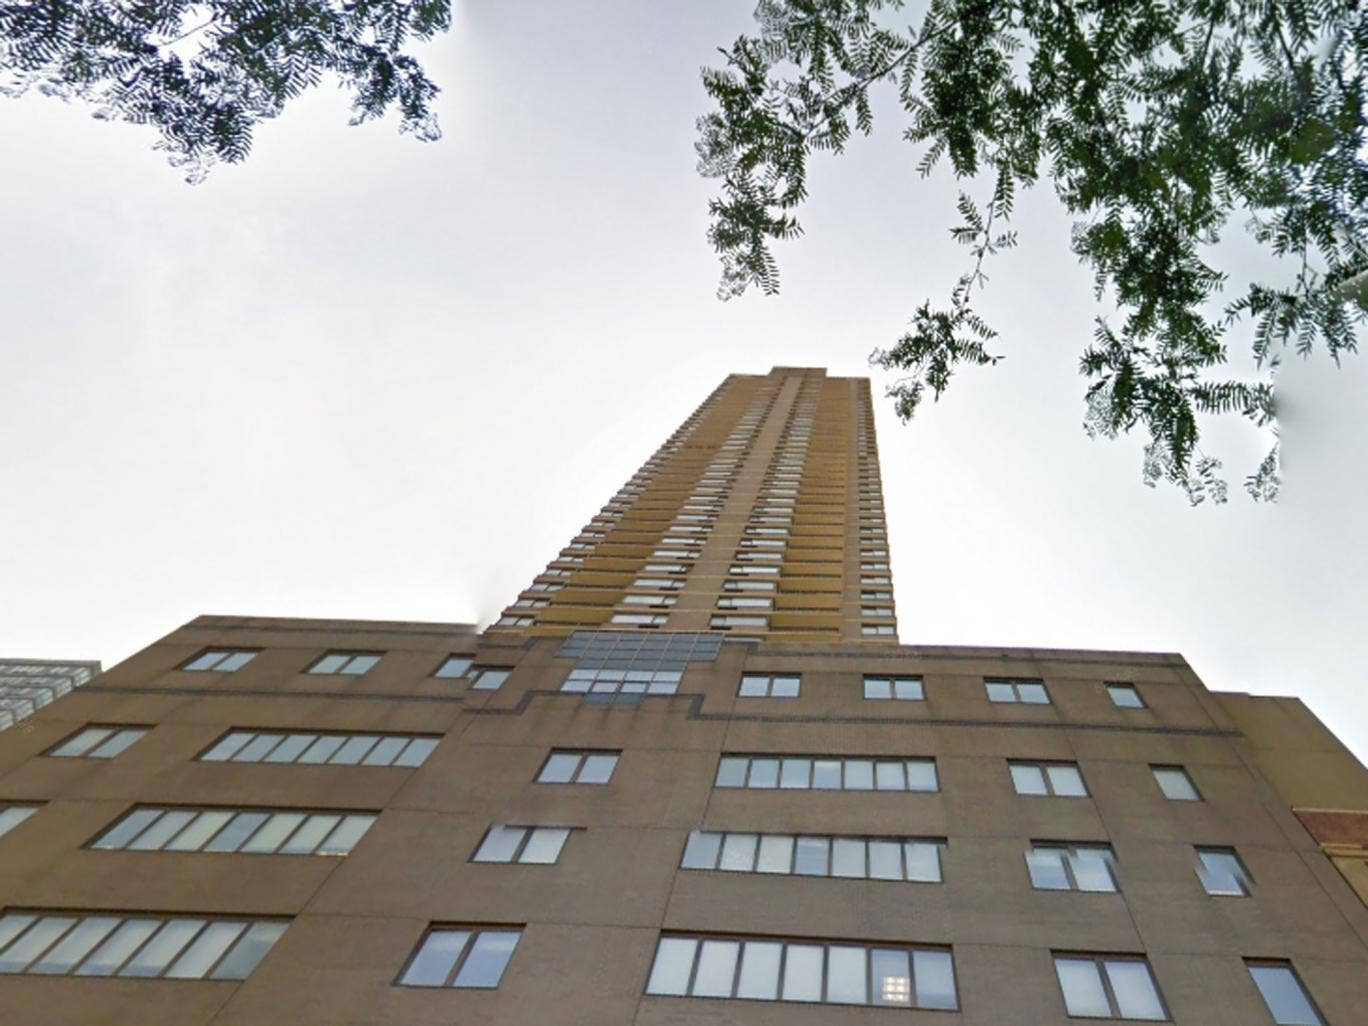 Dmitriy Kanarikov, a systems analyst from Brooklyn, pushed his son Kirill off a ledge on the 52-floor building a short distance from Columbus Circle and the Lincoln Center.